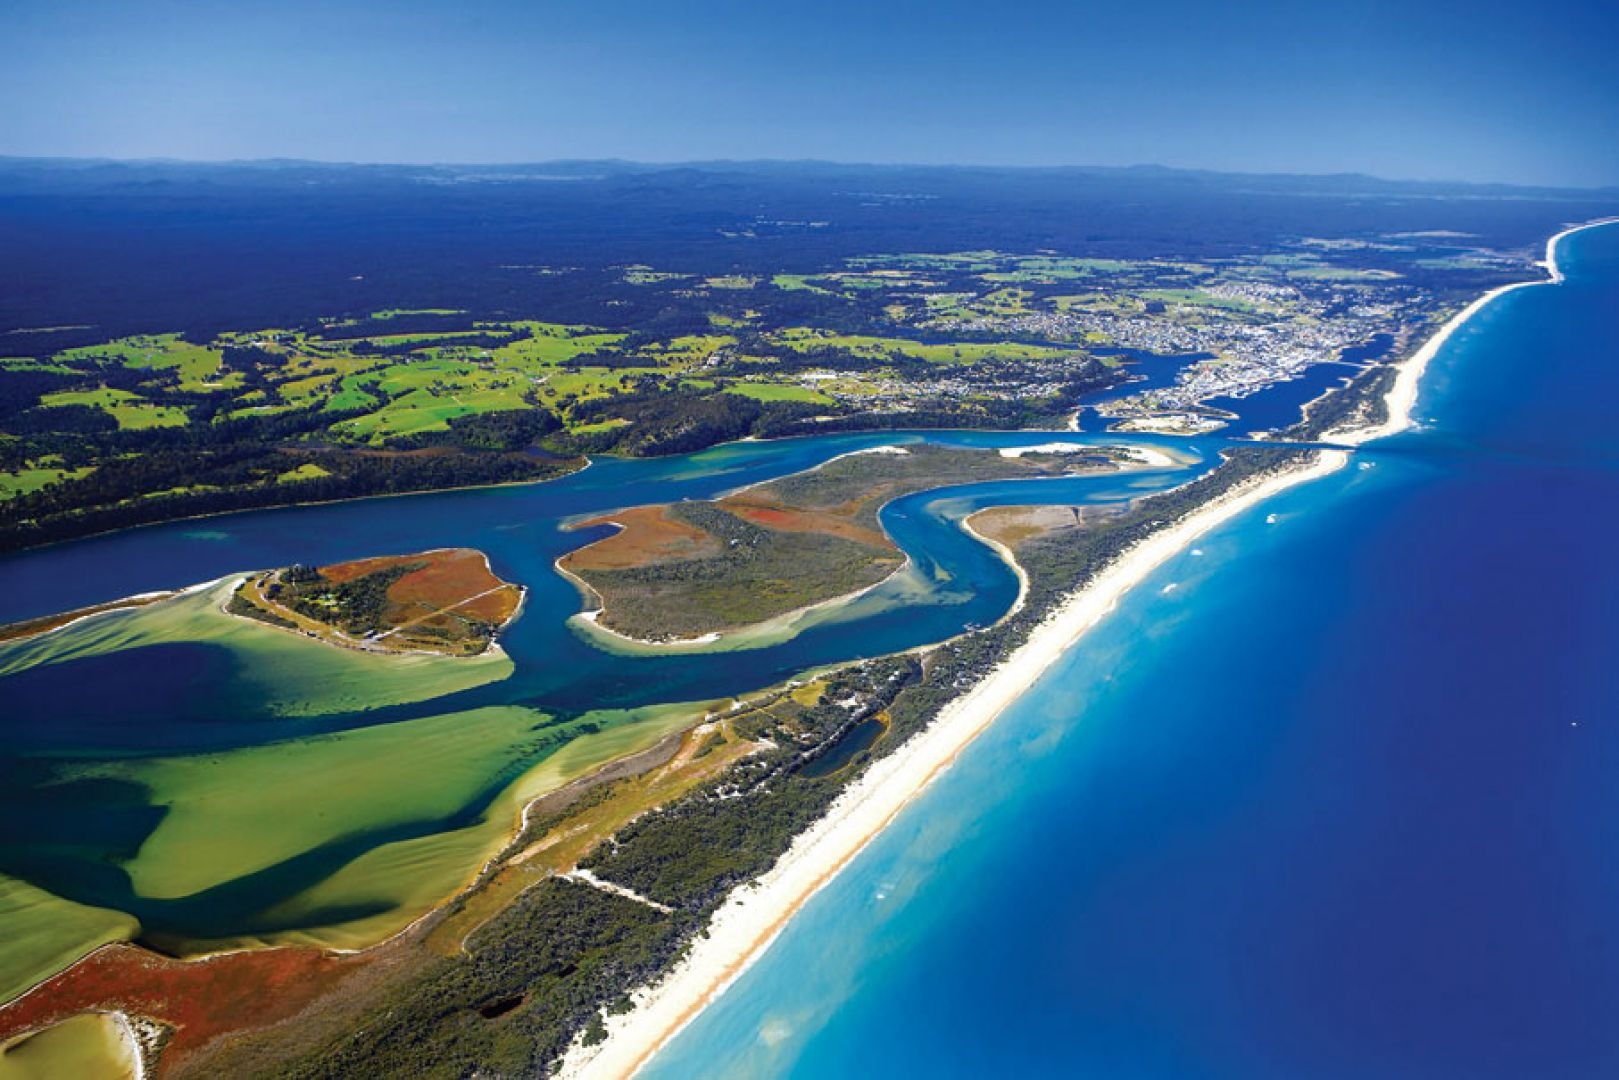 The Gippsland Lakes